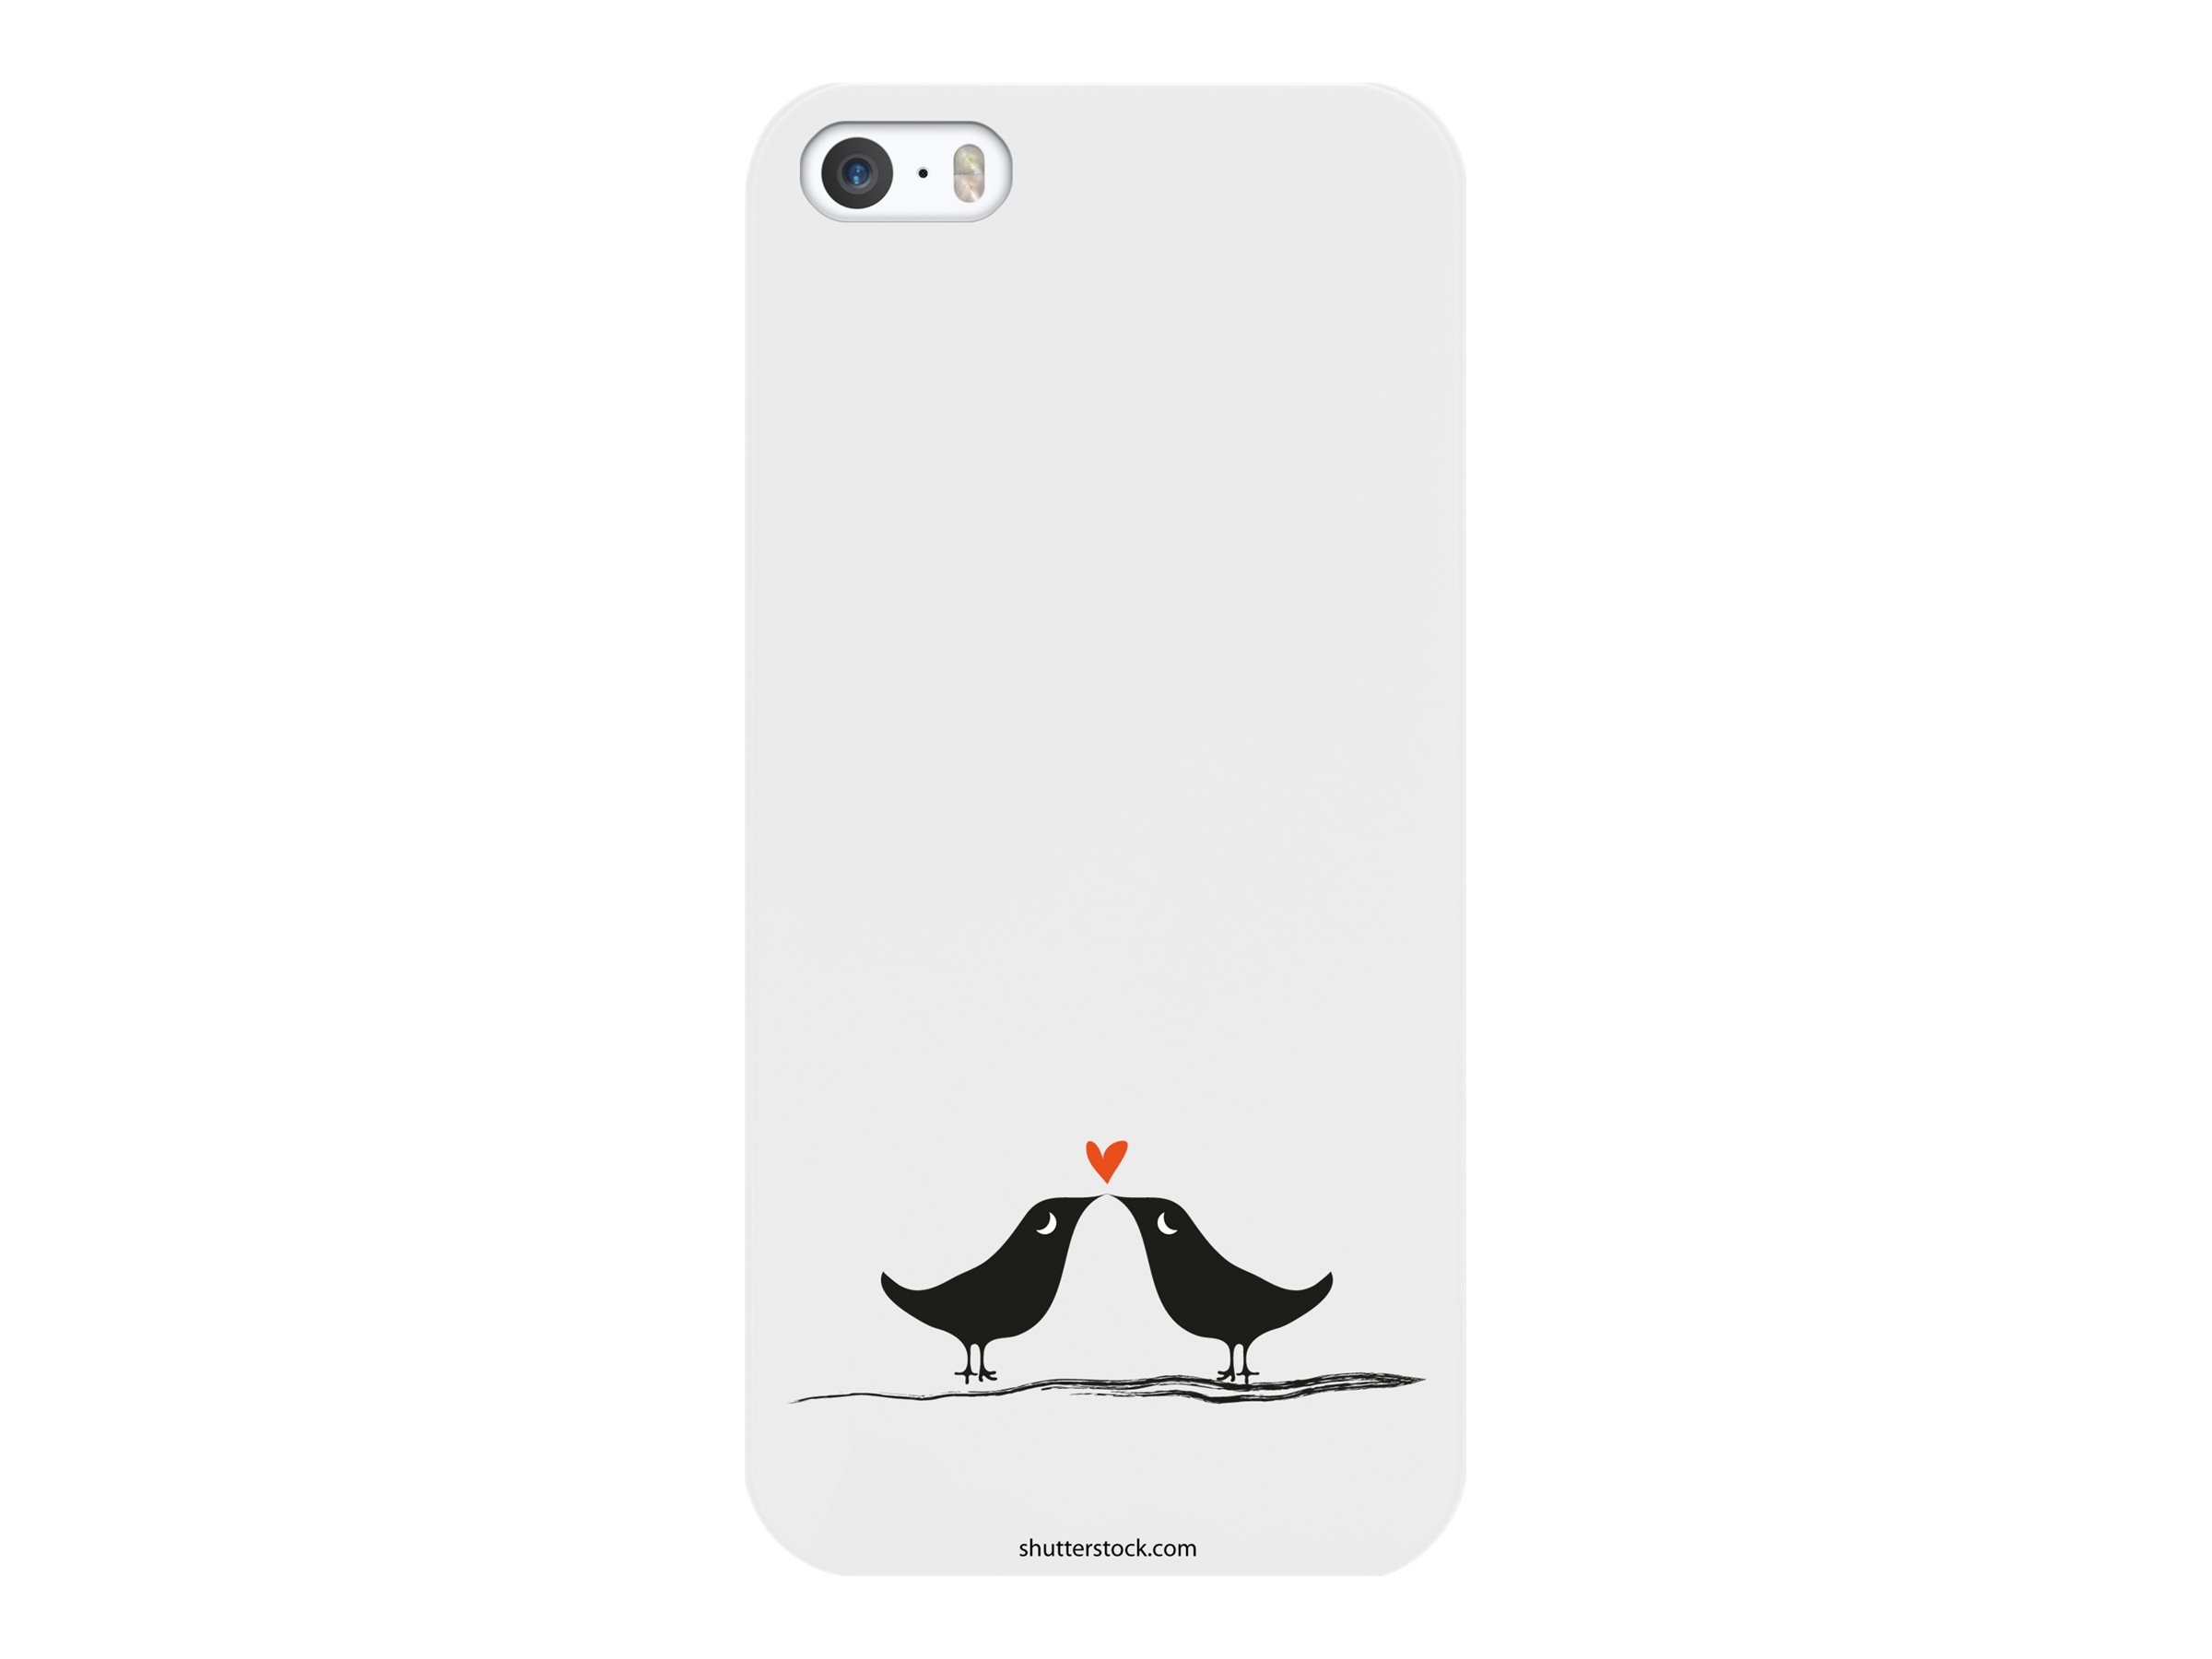 Muvit love birds - Coque de protection pour iPhone 5, 5s - noir, blanc